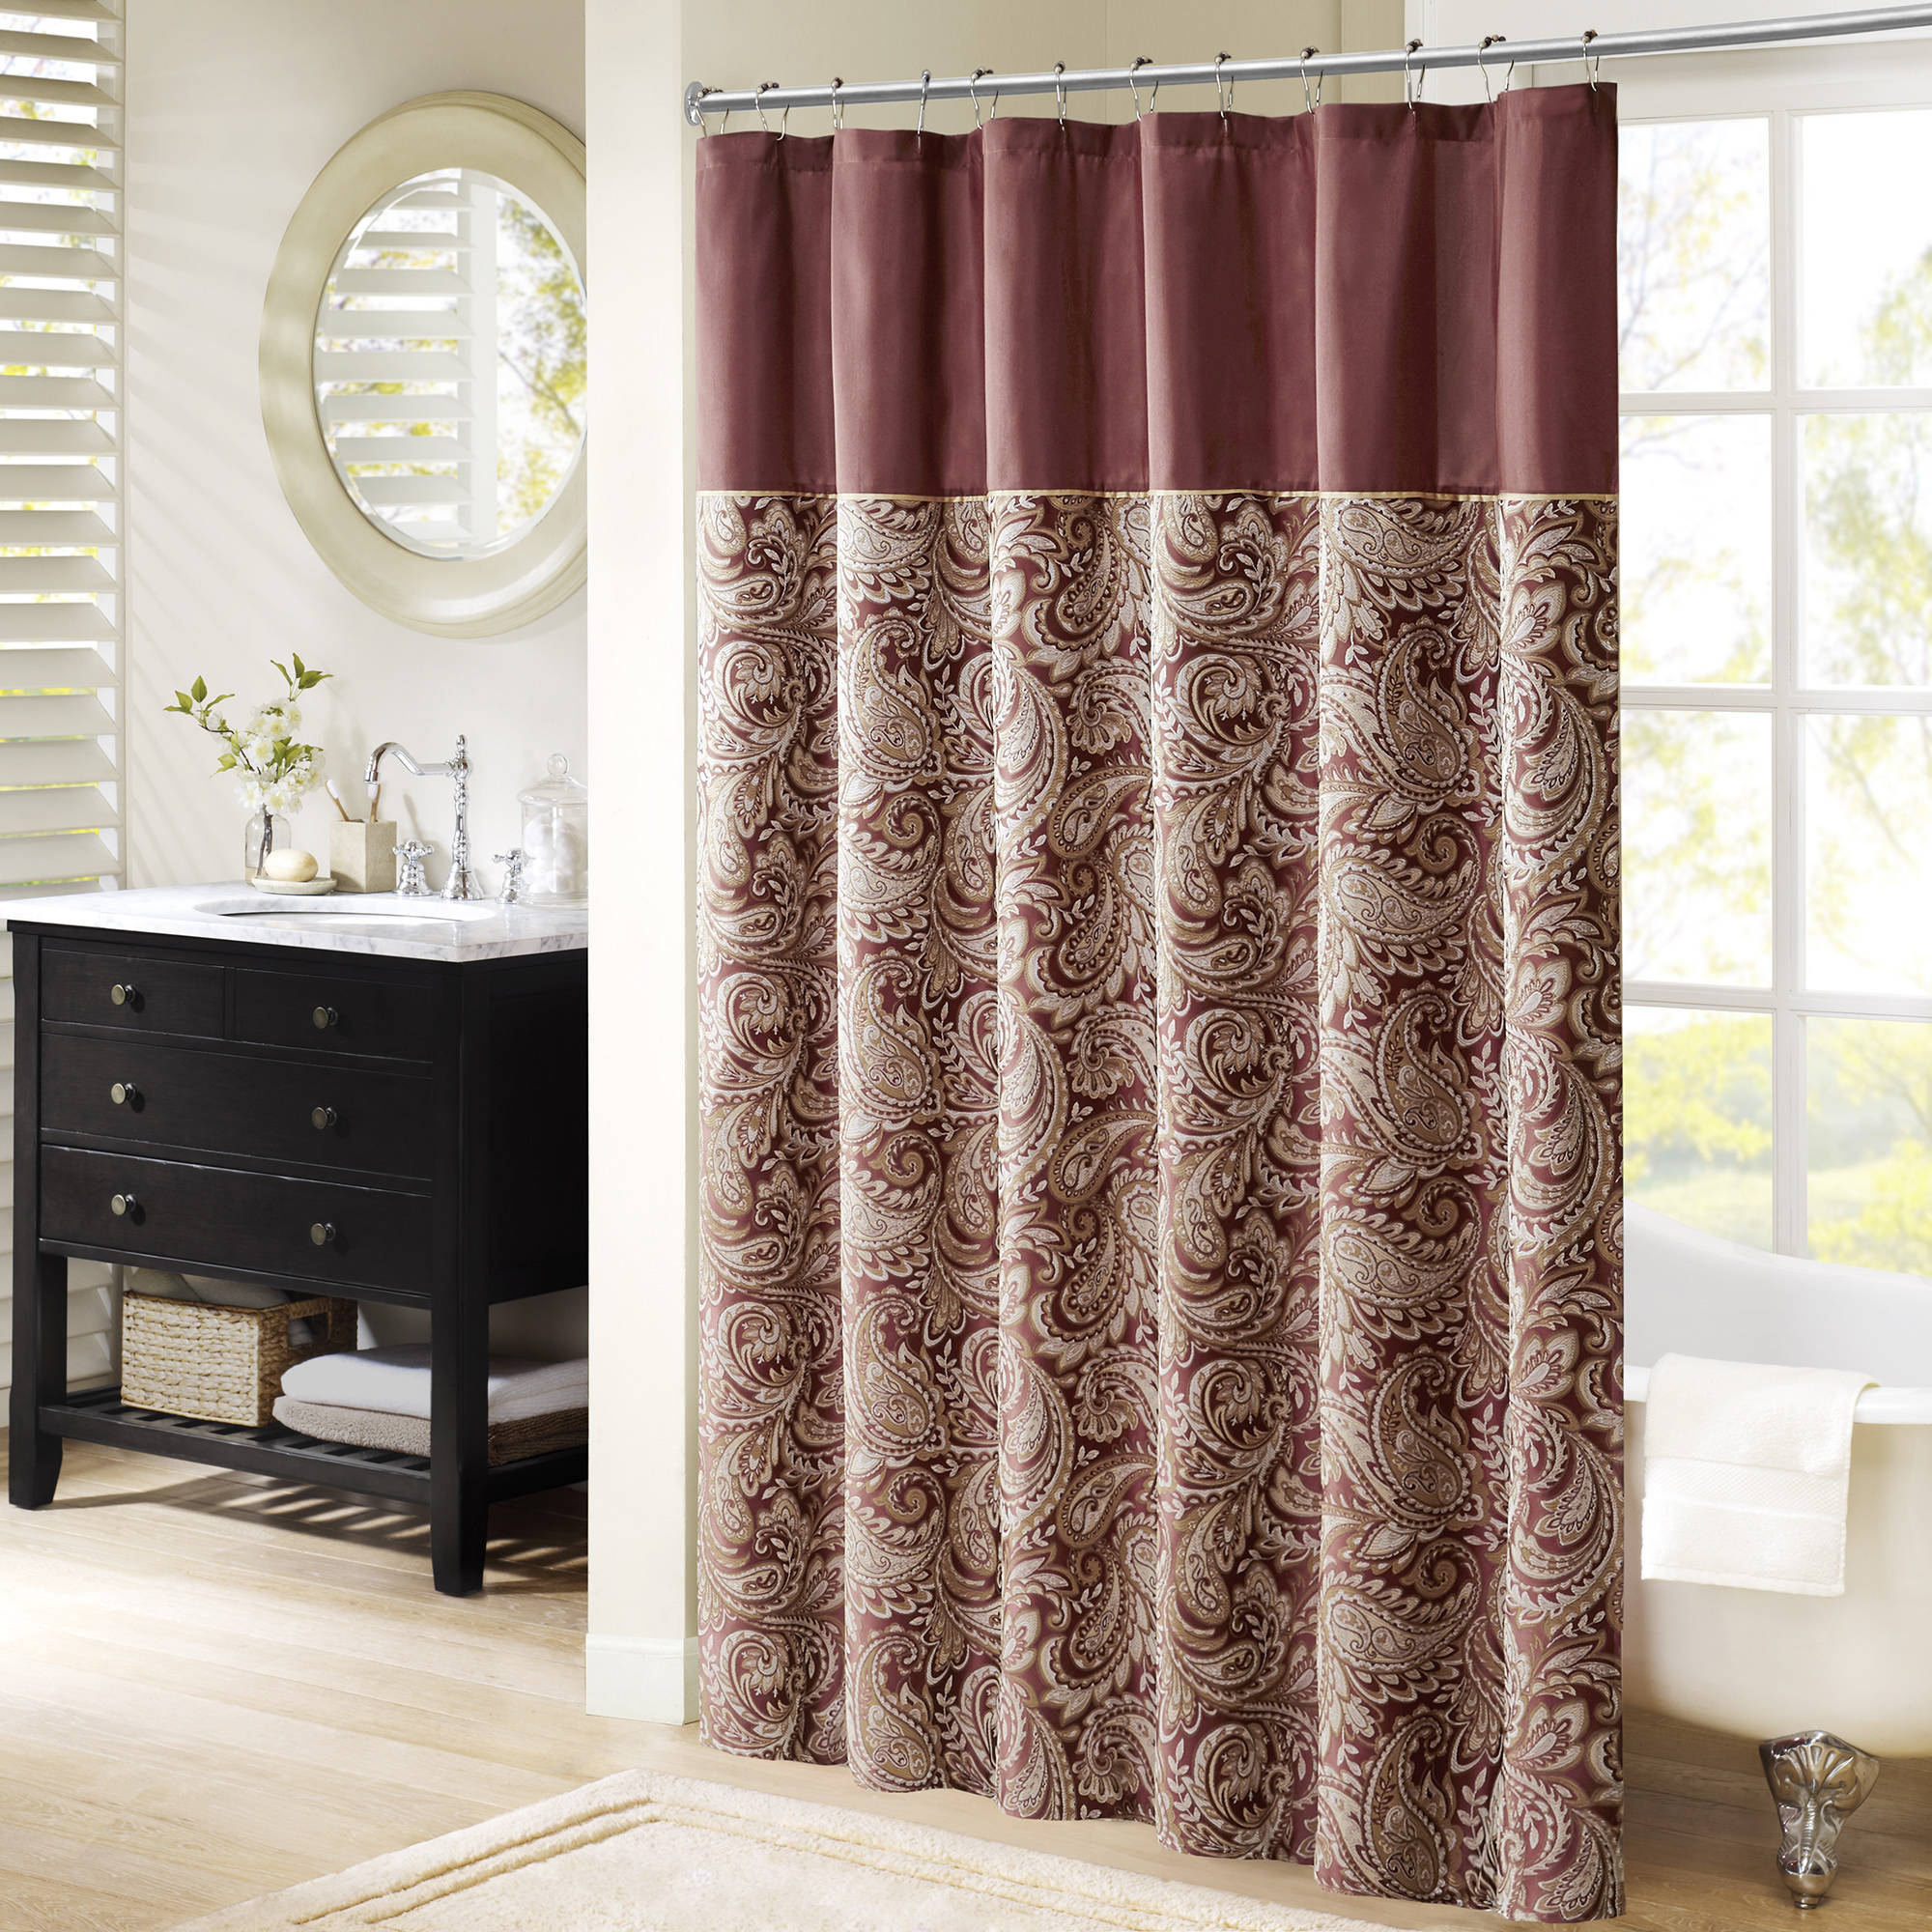 Shower Curtains Walmart within sizing 2000 X 2000